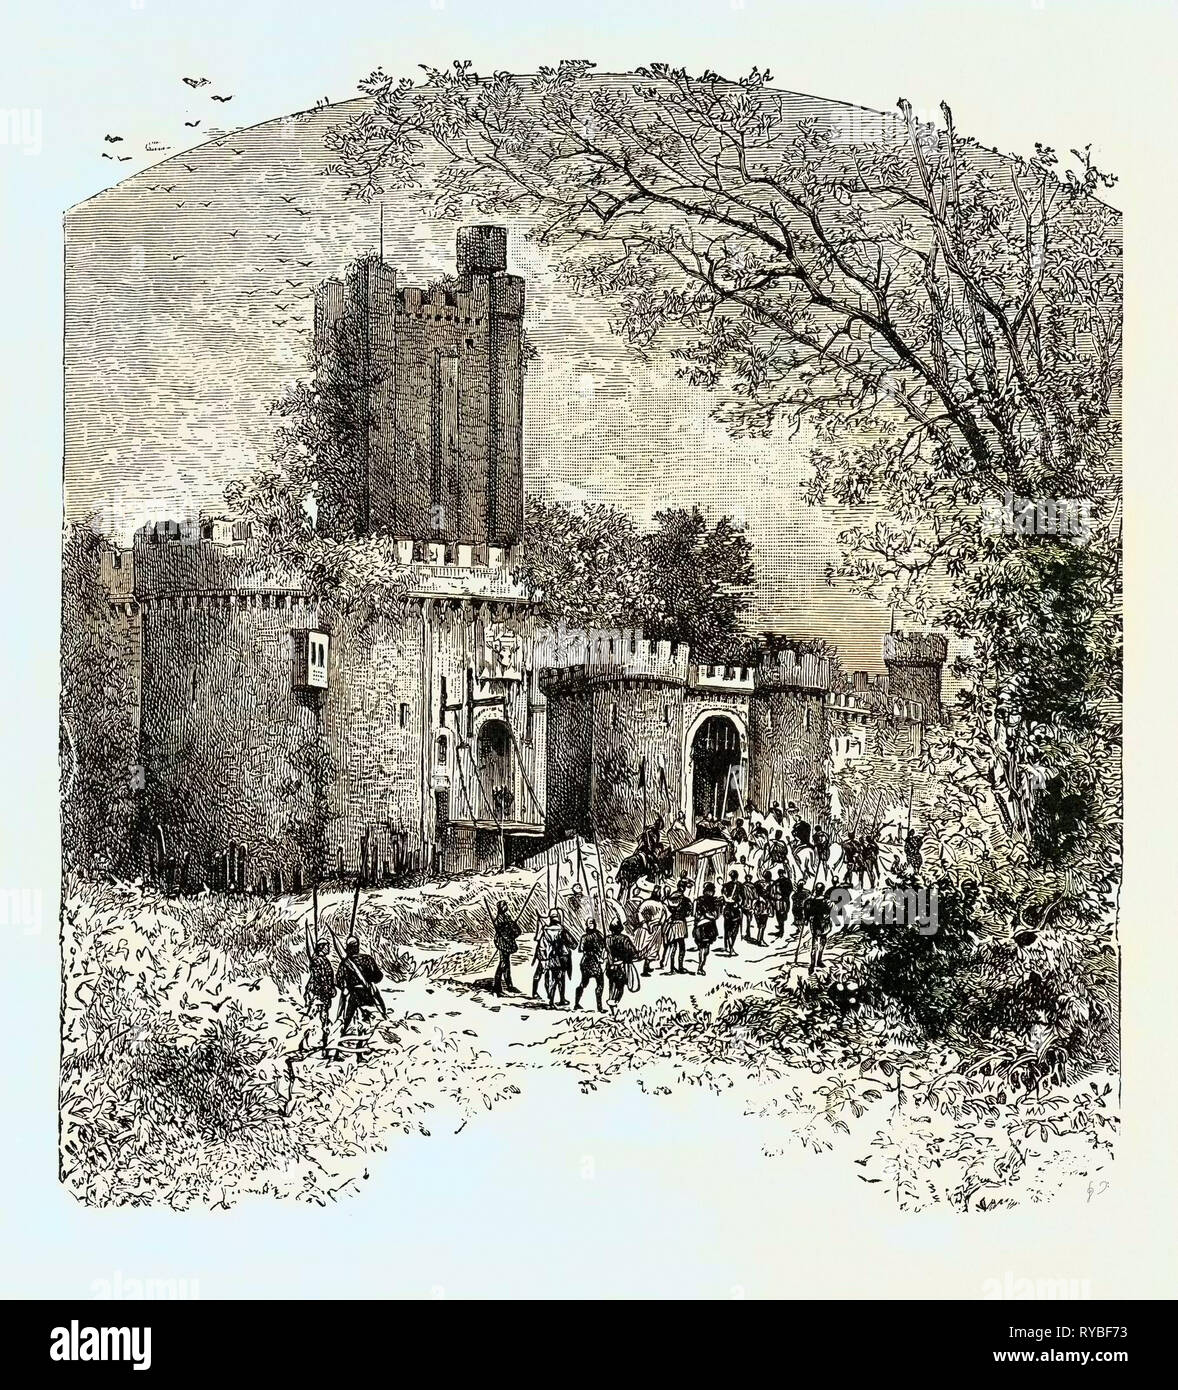 Feudal Castle in the Eleventh Century - Stock Image